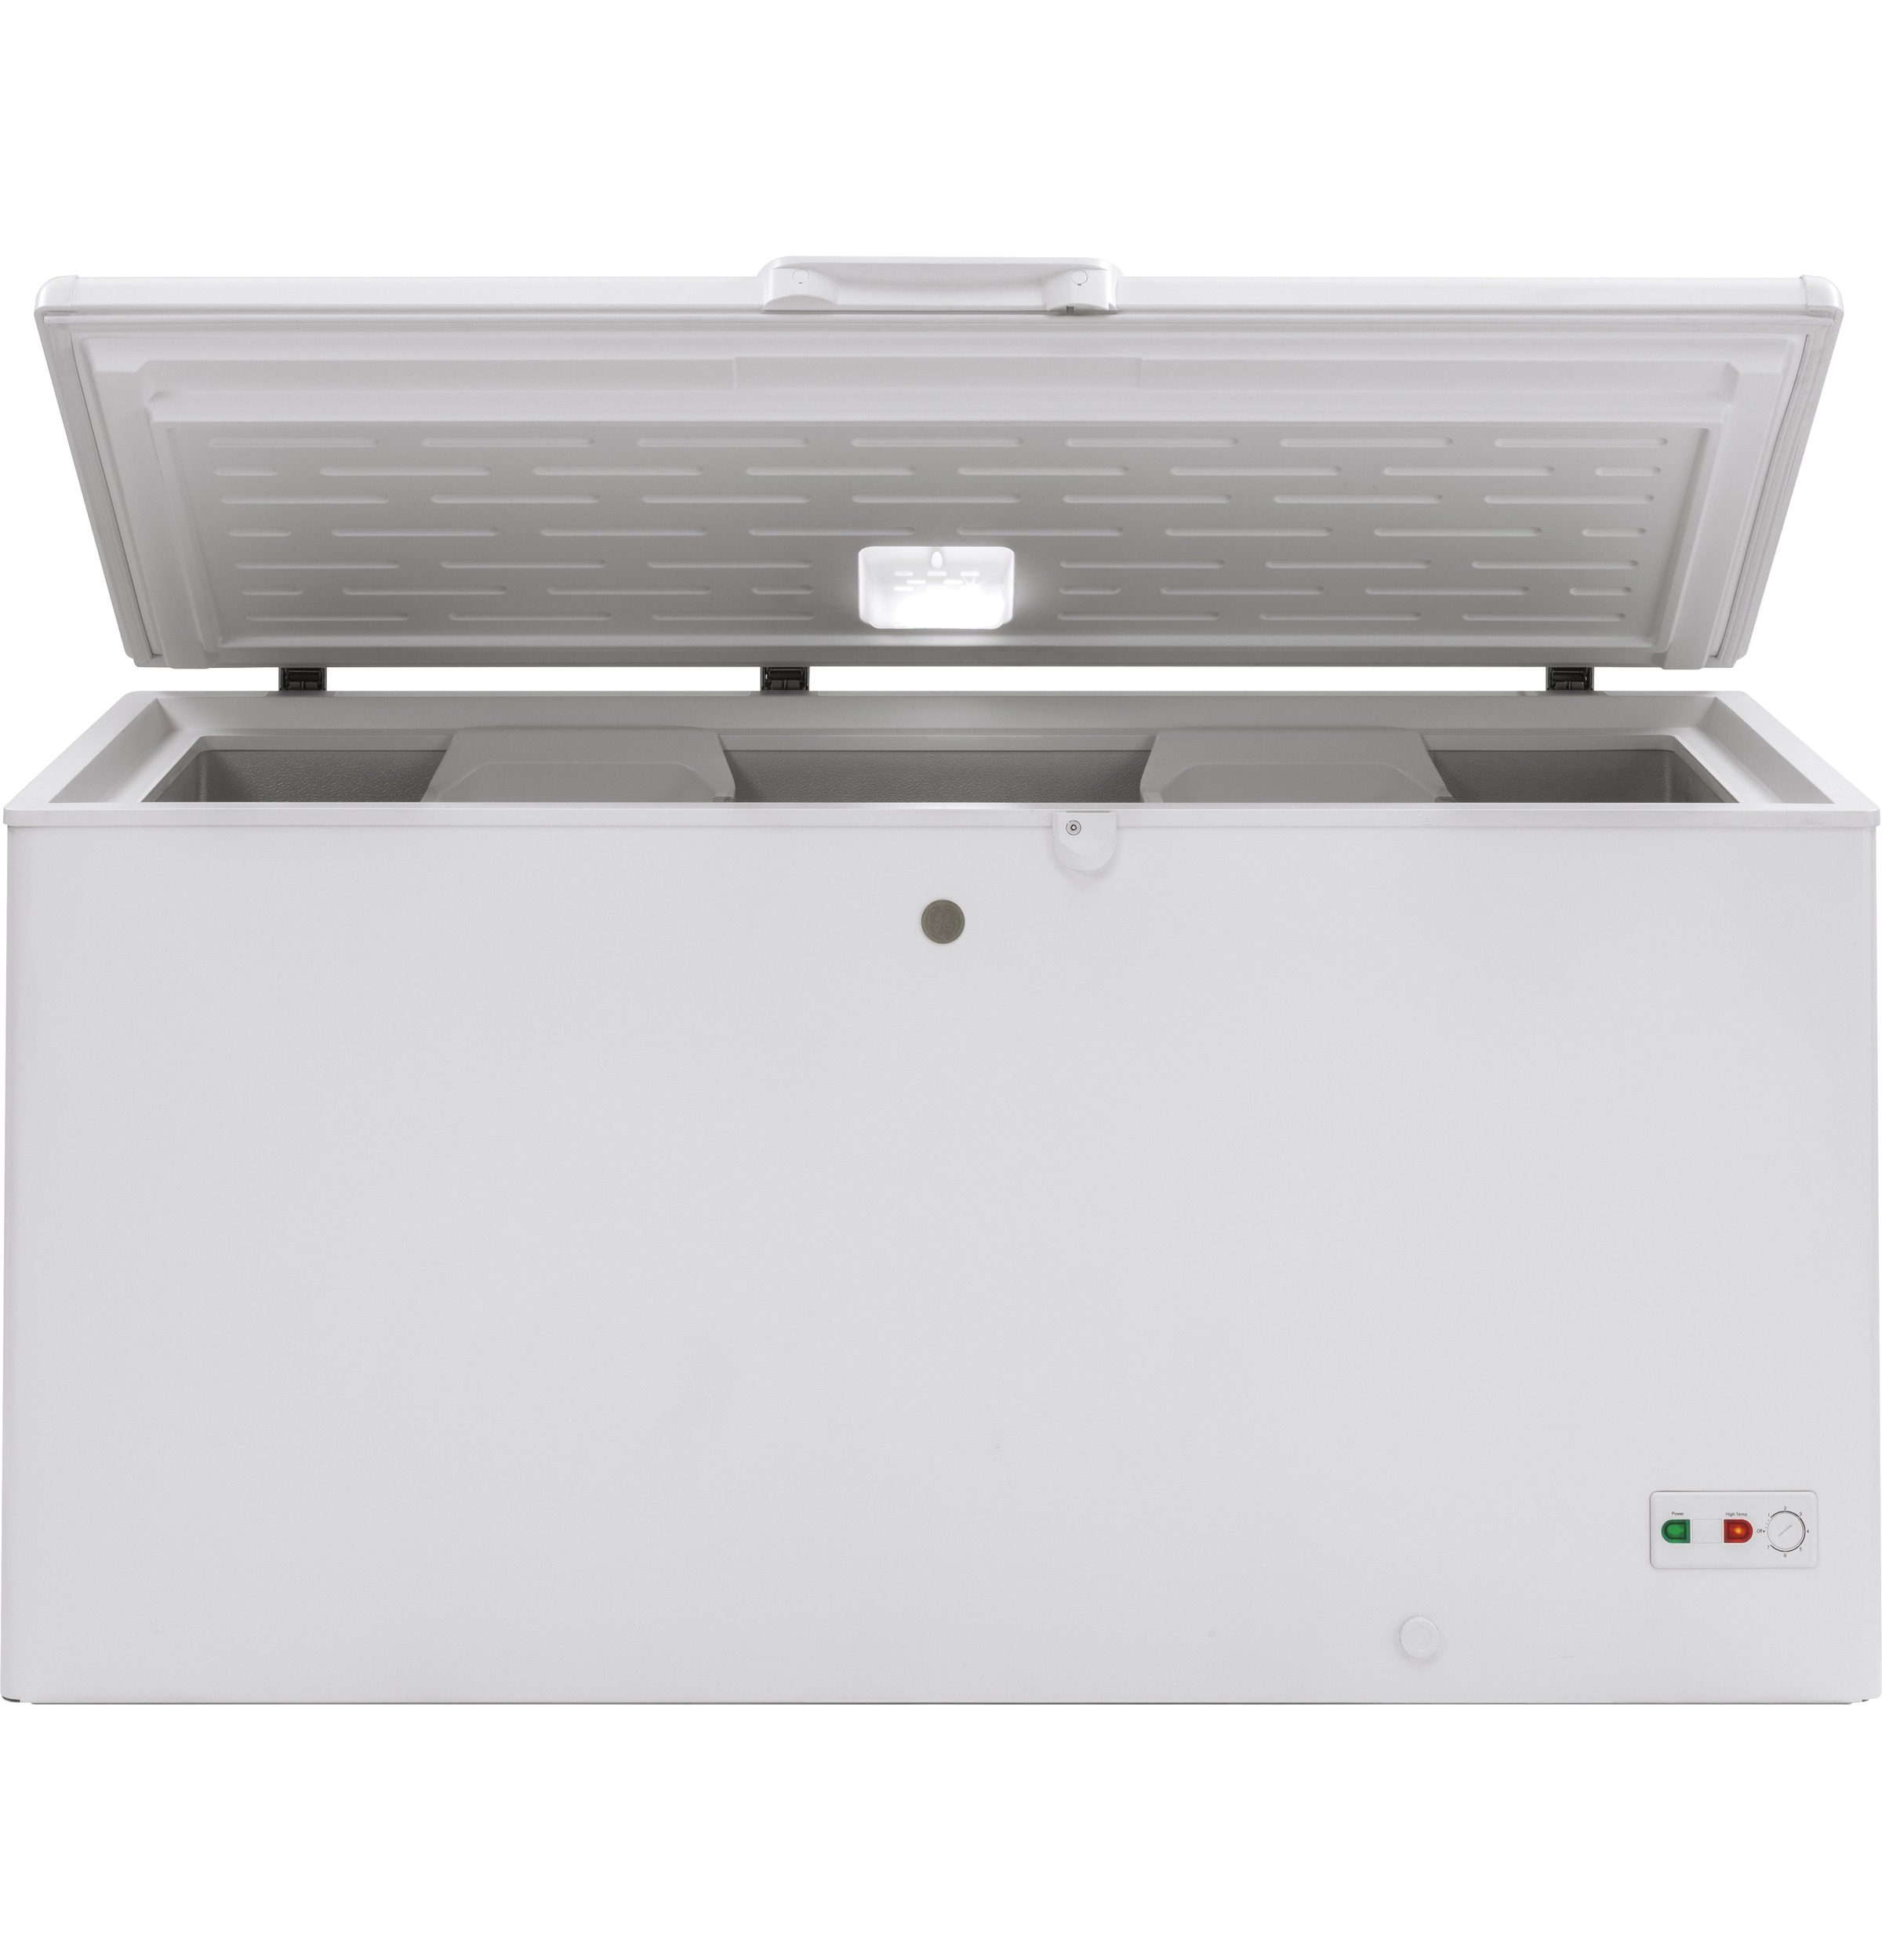 Model: FCM16SLWW | GE GE® 15.7 Cu. Ft. Manual Defrost Chest Freezer